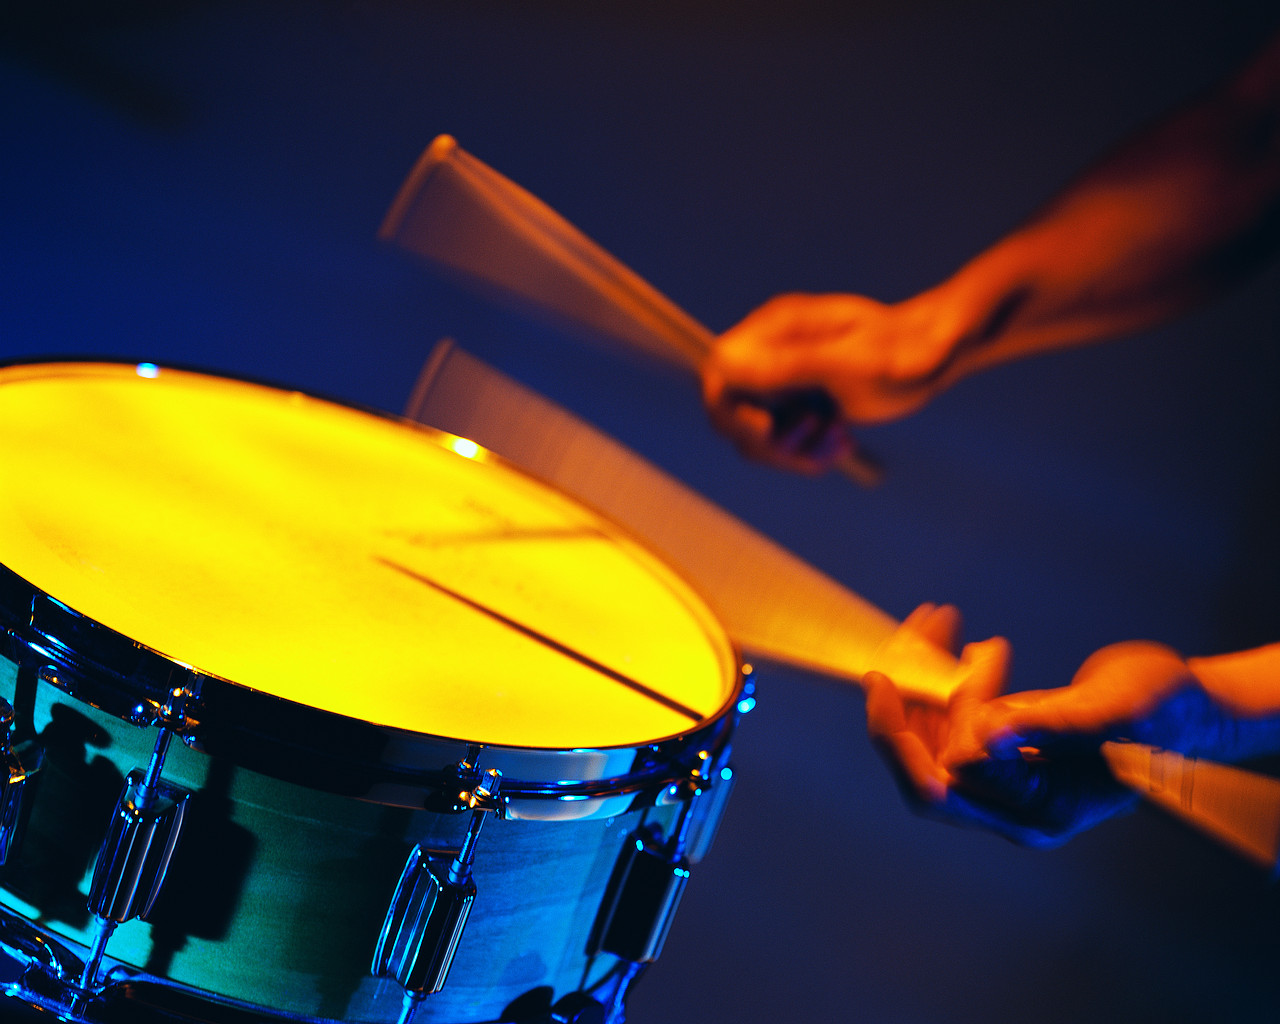 Snare Drum and Hands.jpg